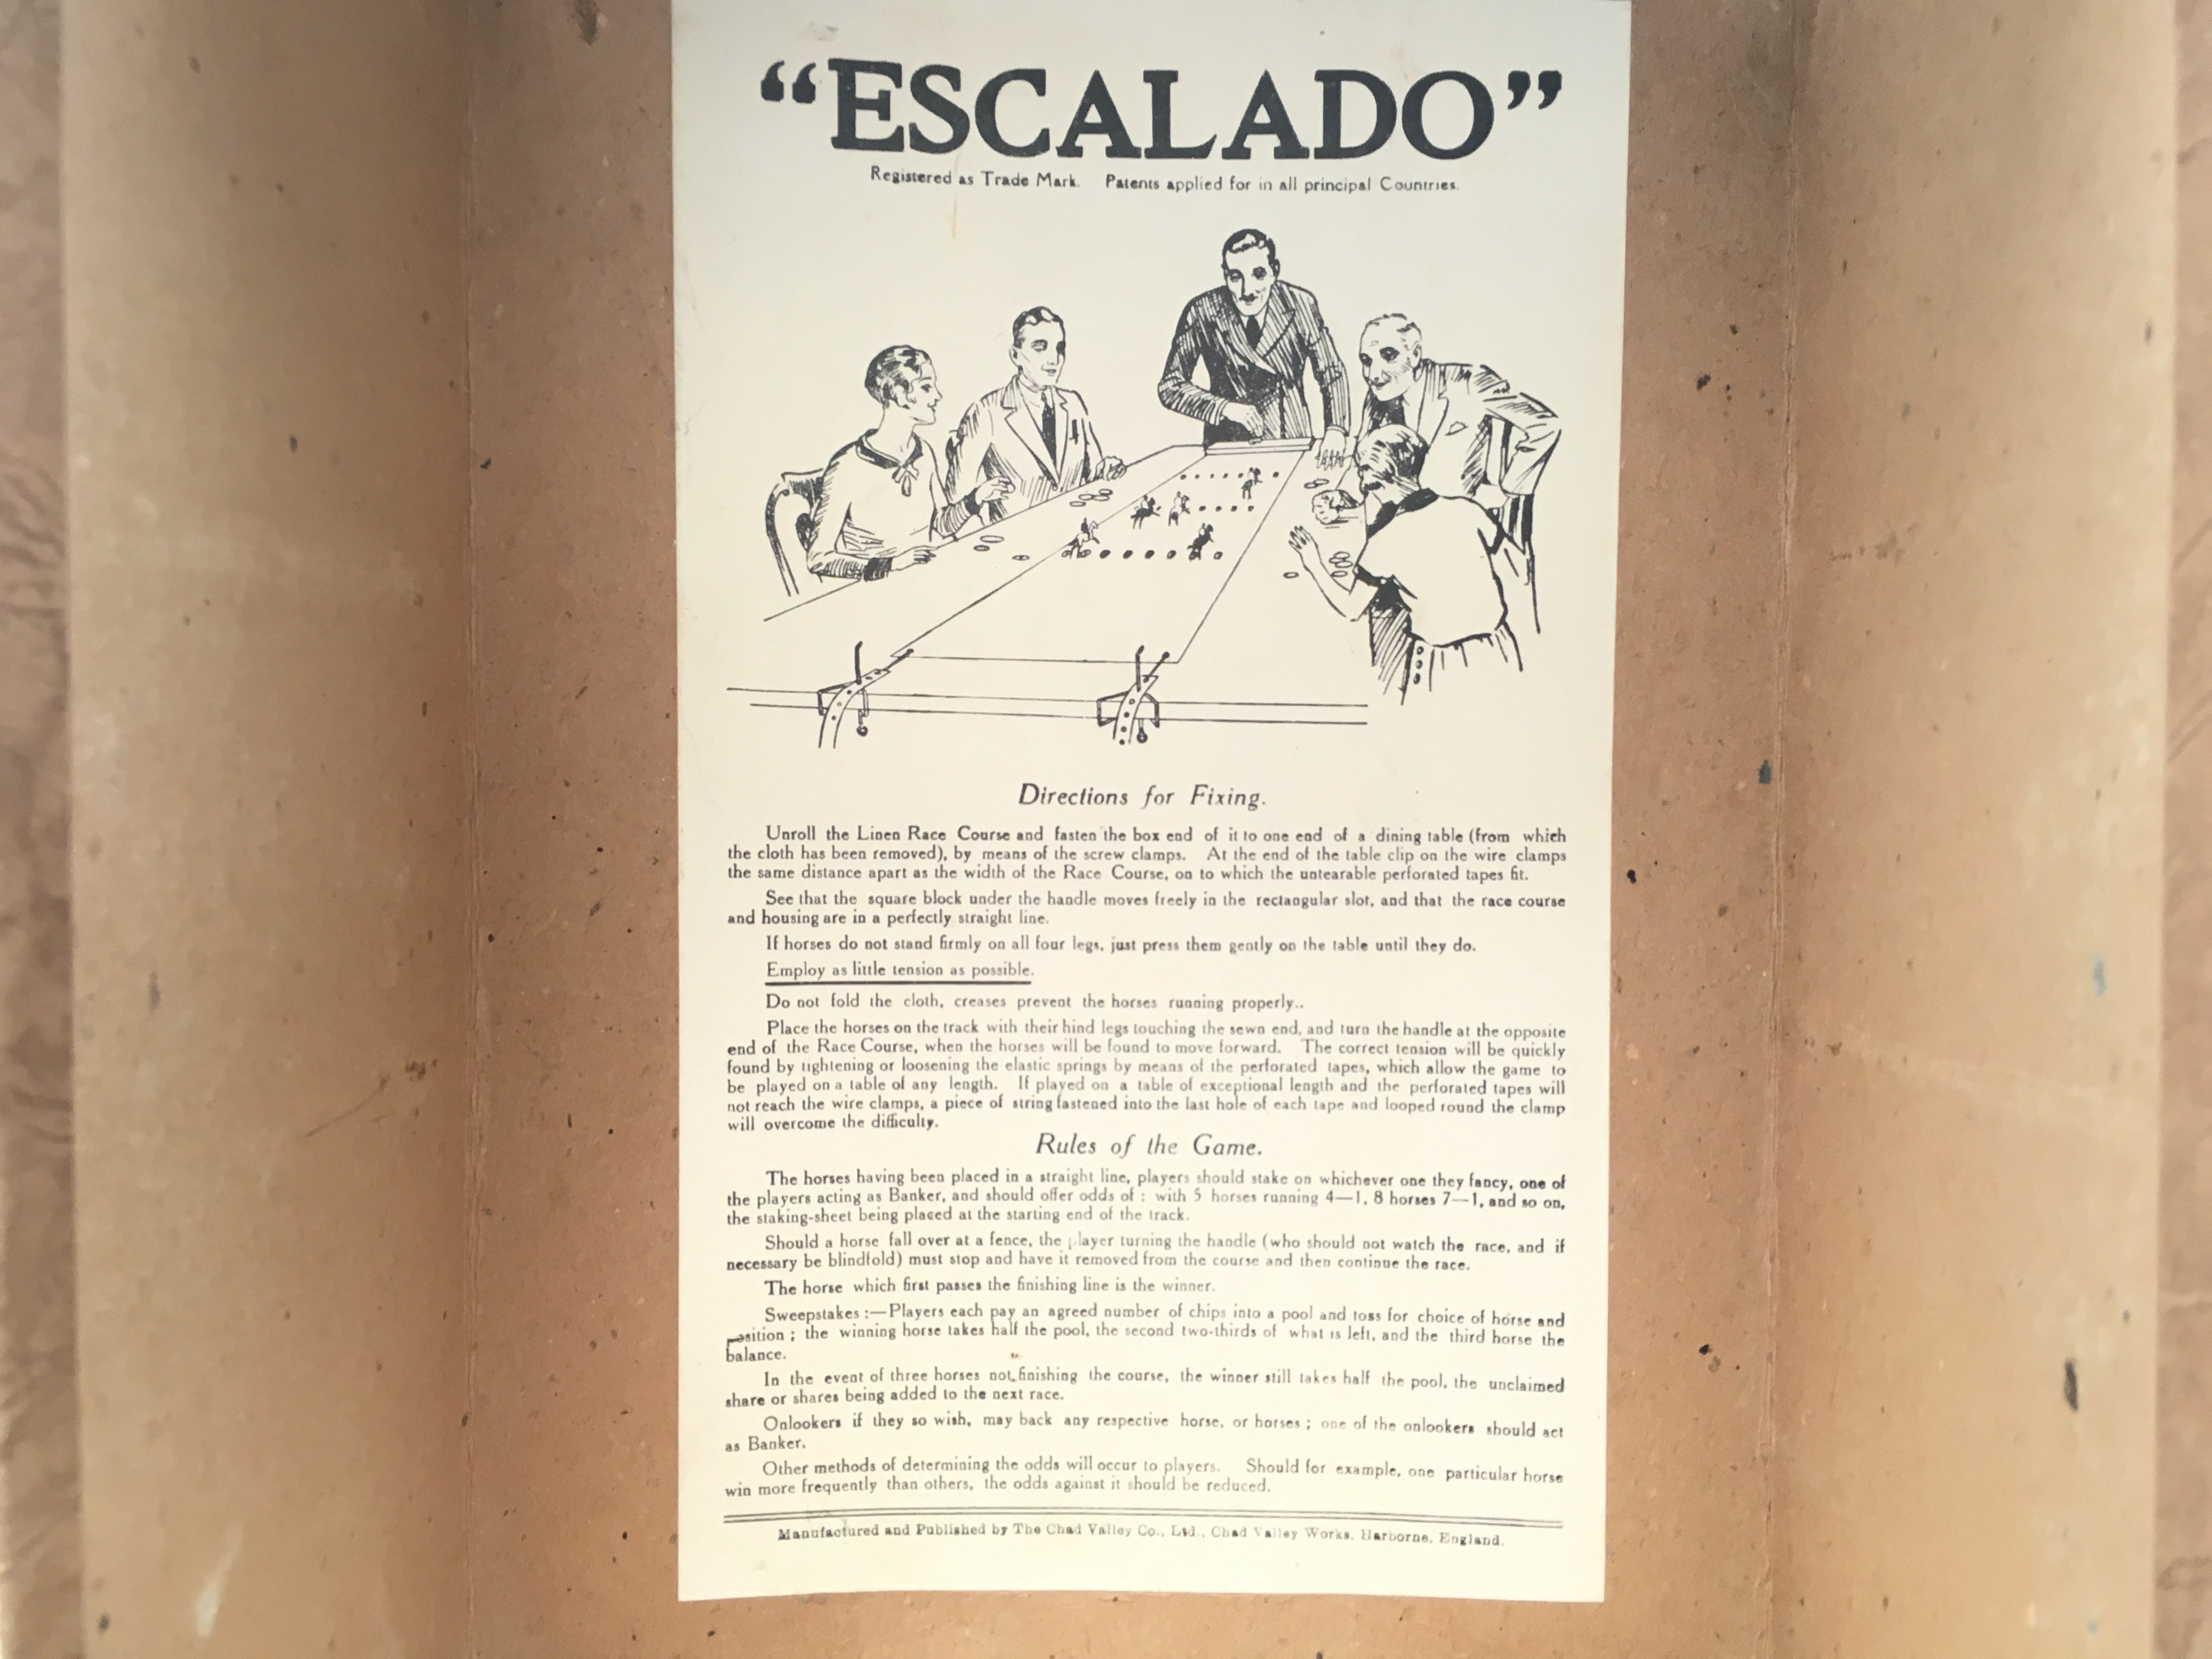 Antique Chad valley Escalado vintage horse racing game. 1930's image cover. - Image 4 of 4